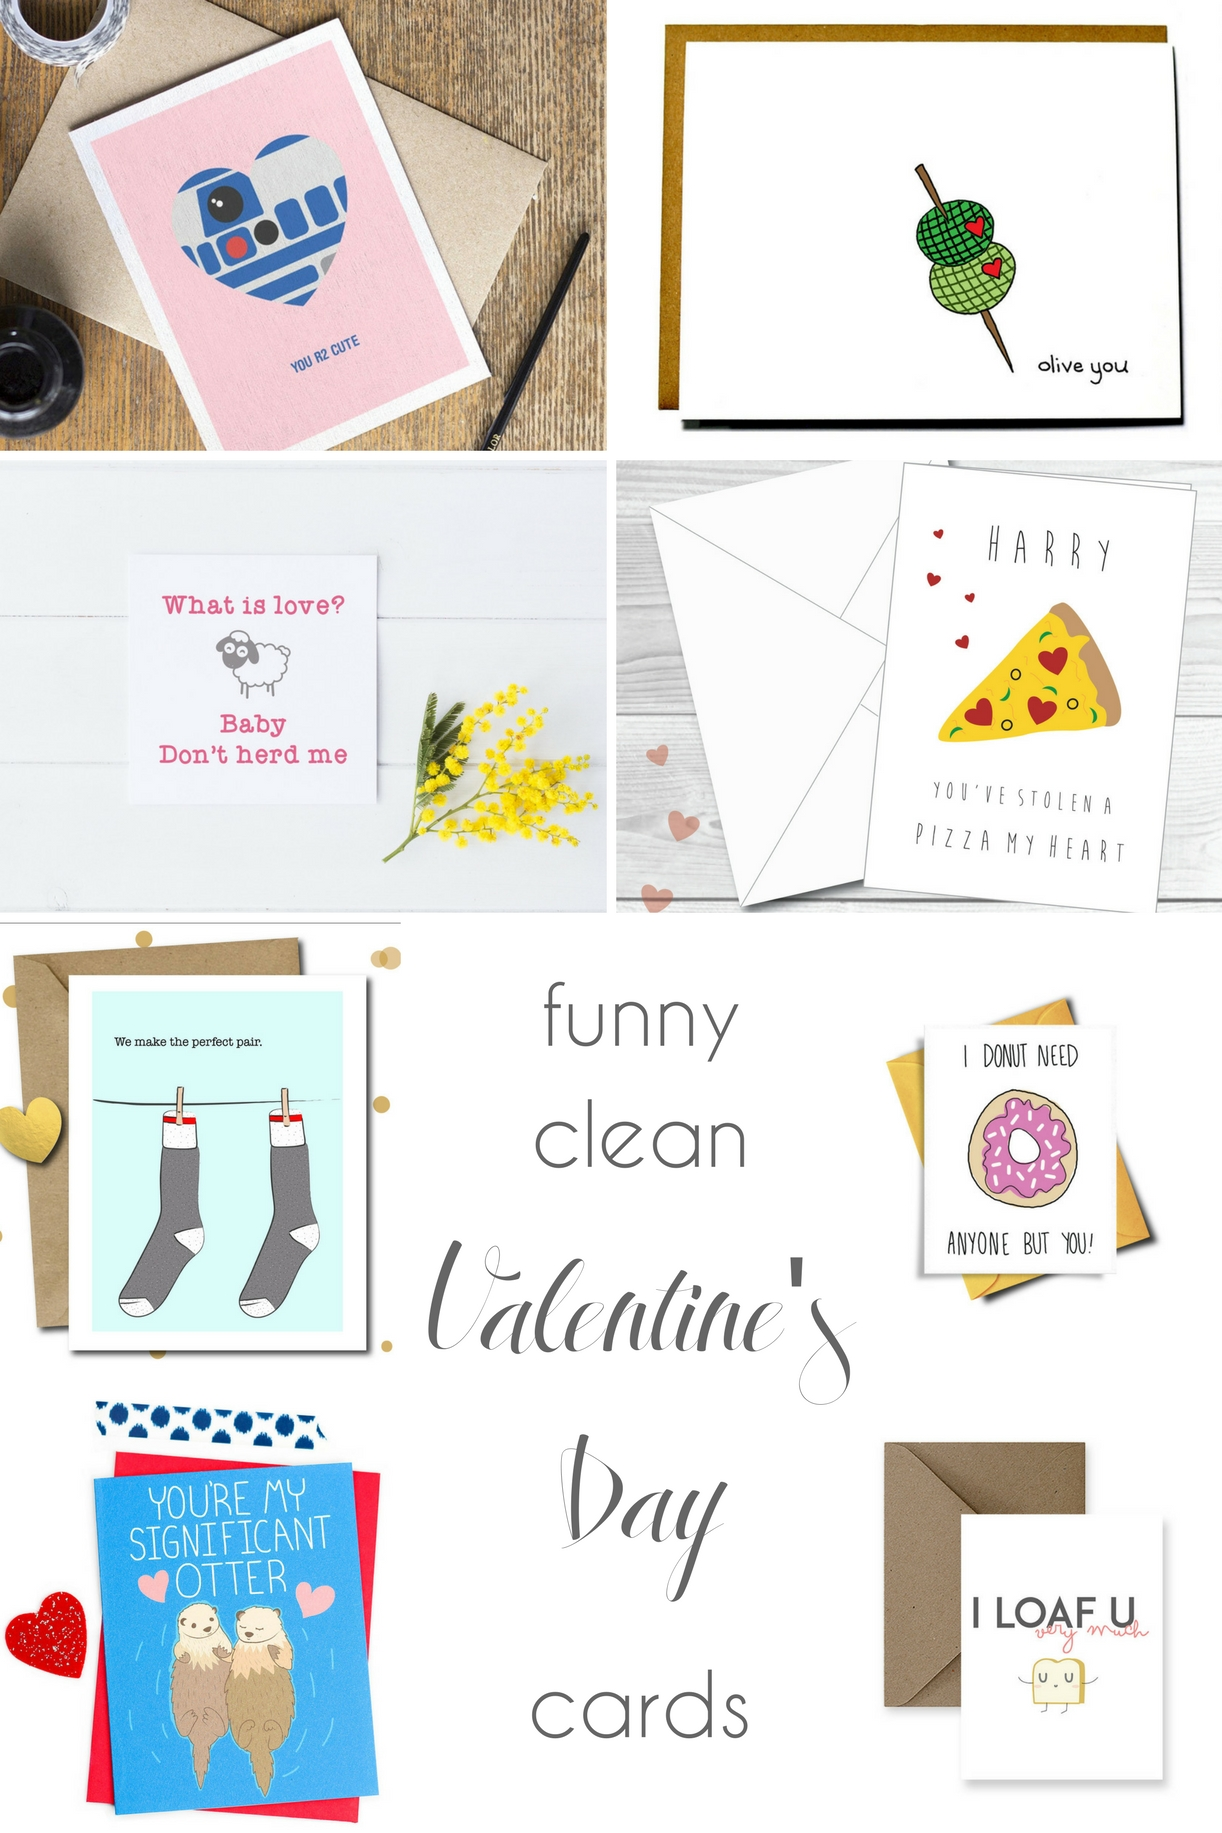 Funny Clean Valentines Day Cards Hill City Bride